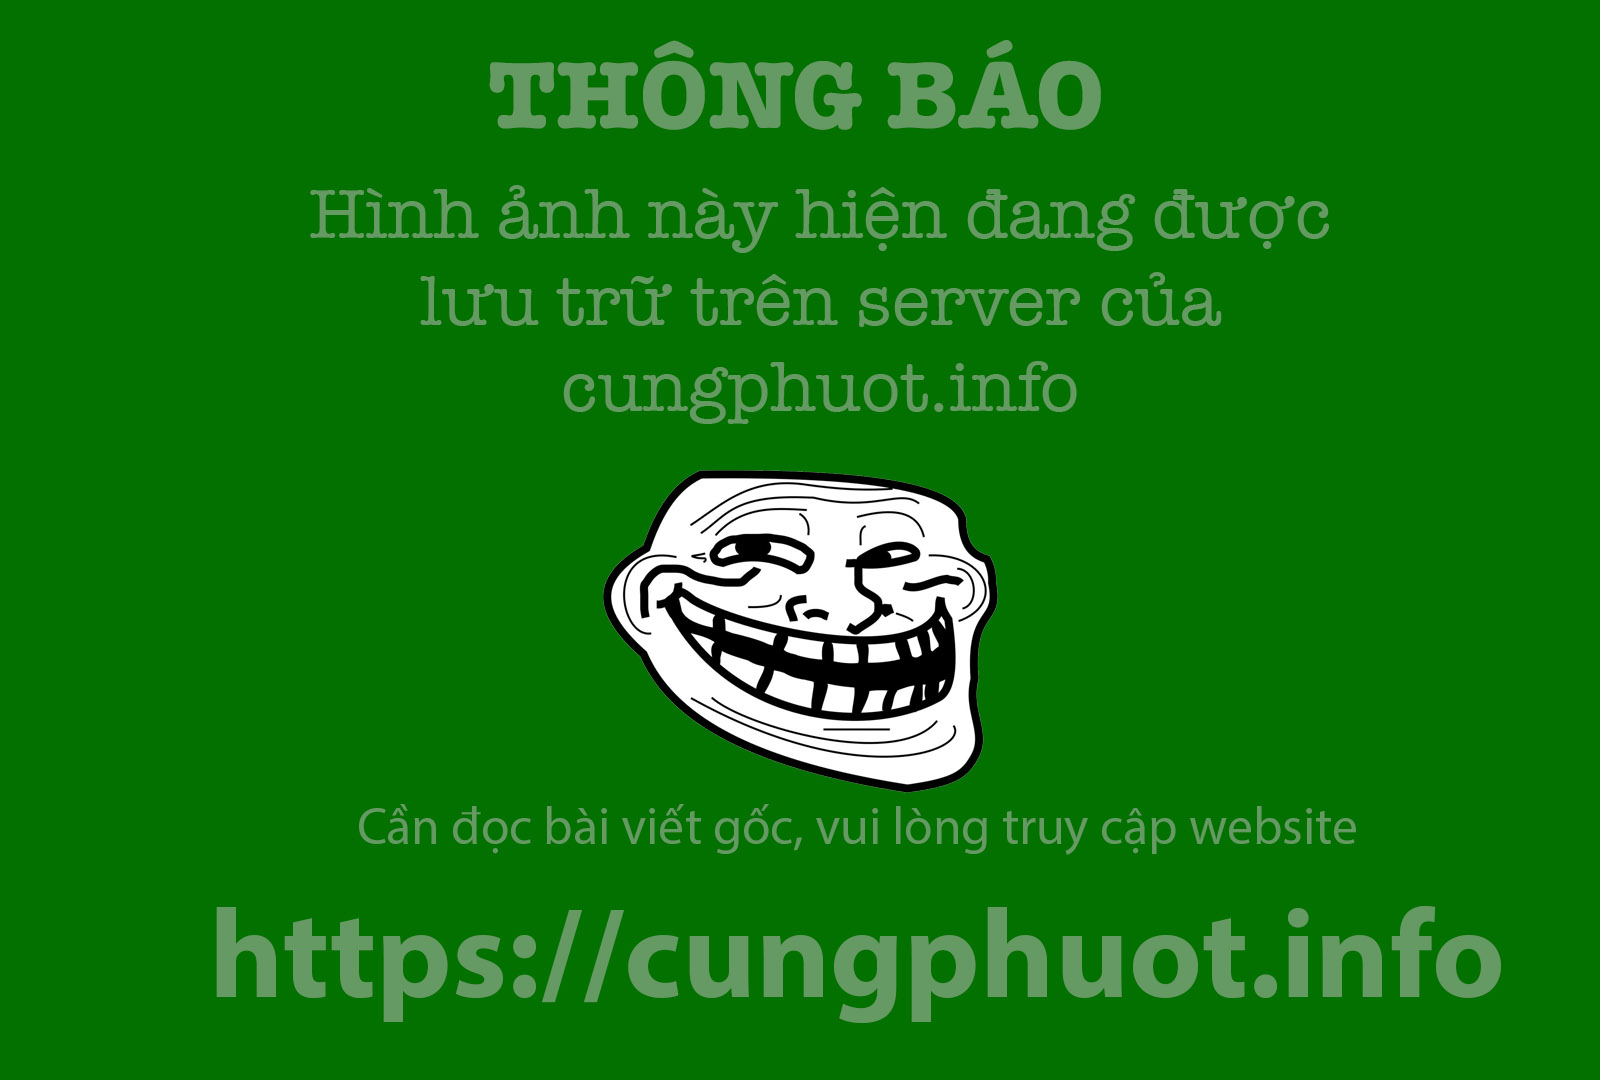 Buses to Binh Dinh